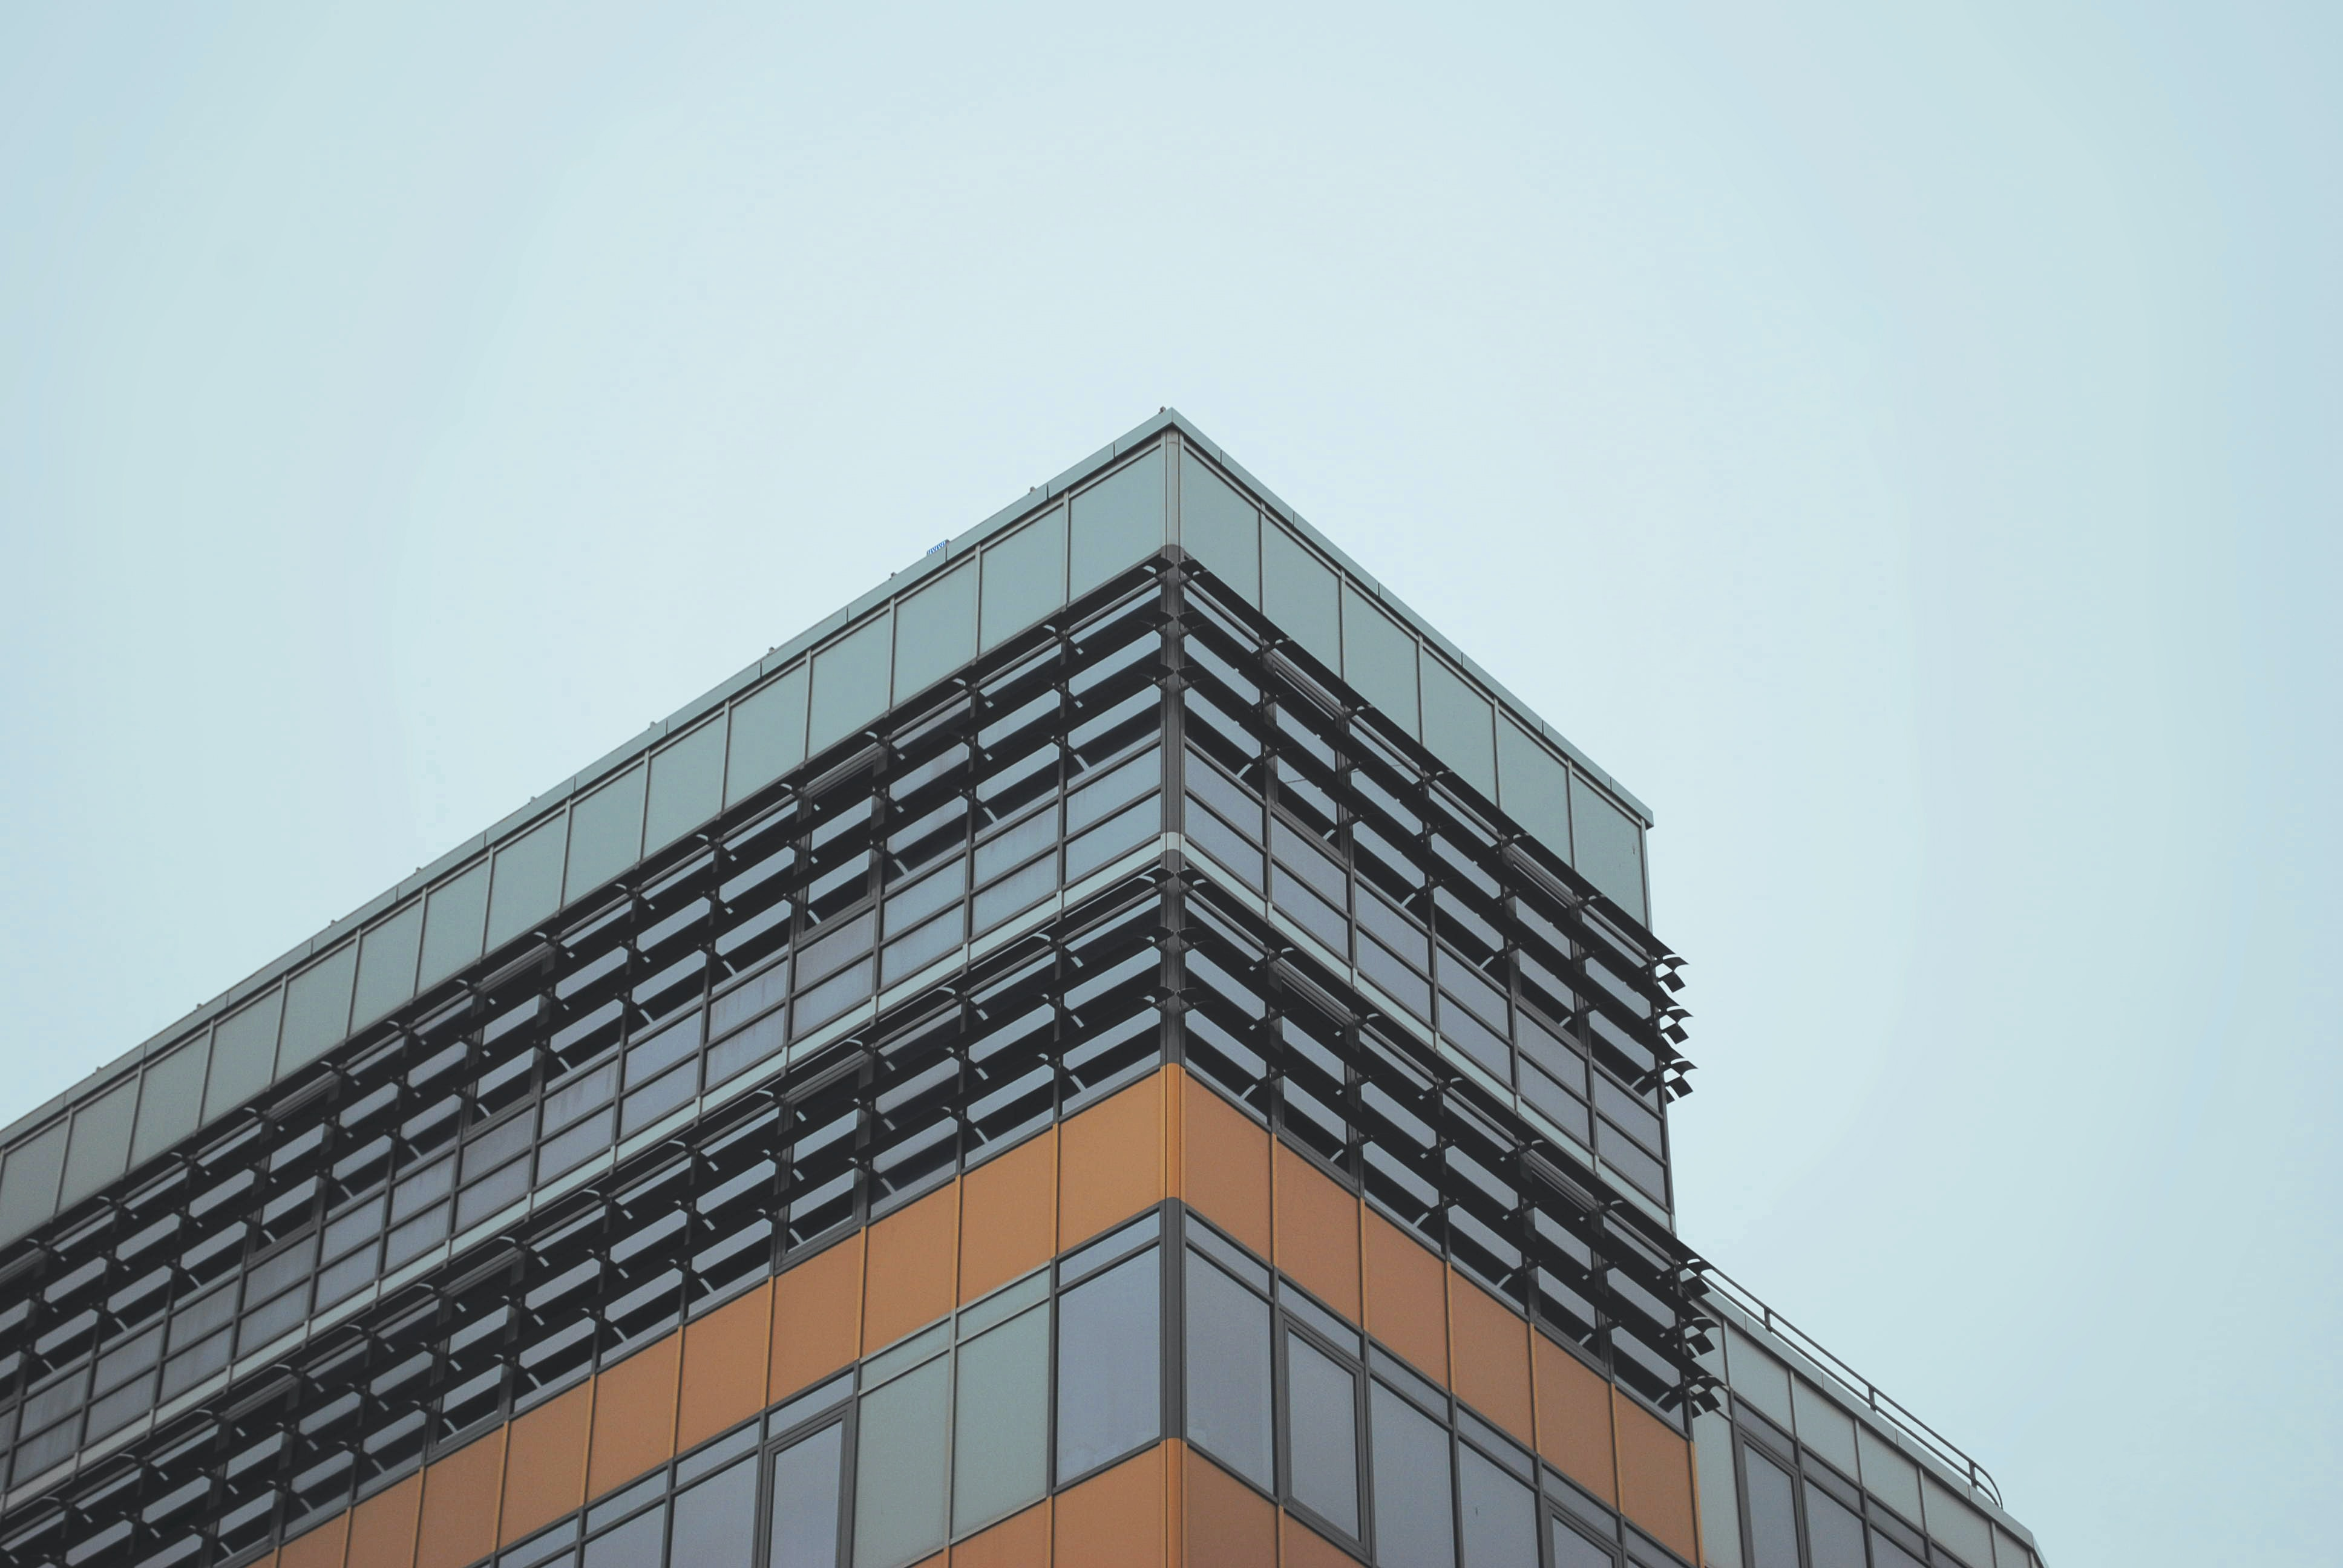 low-angled photography of concrete building under cloudy sky